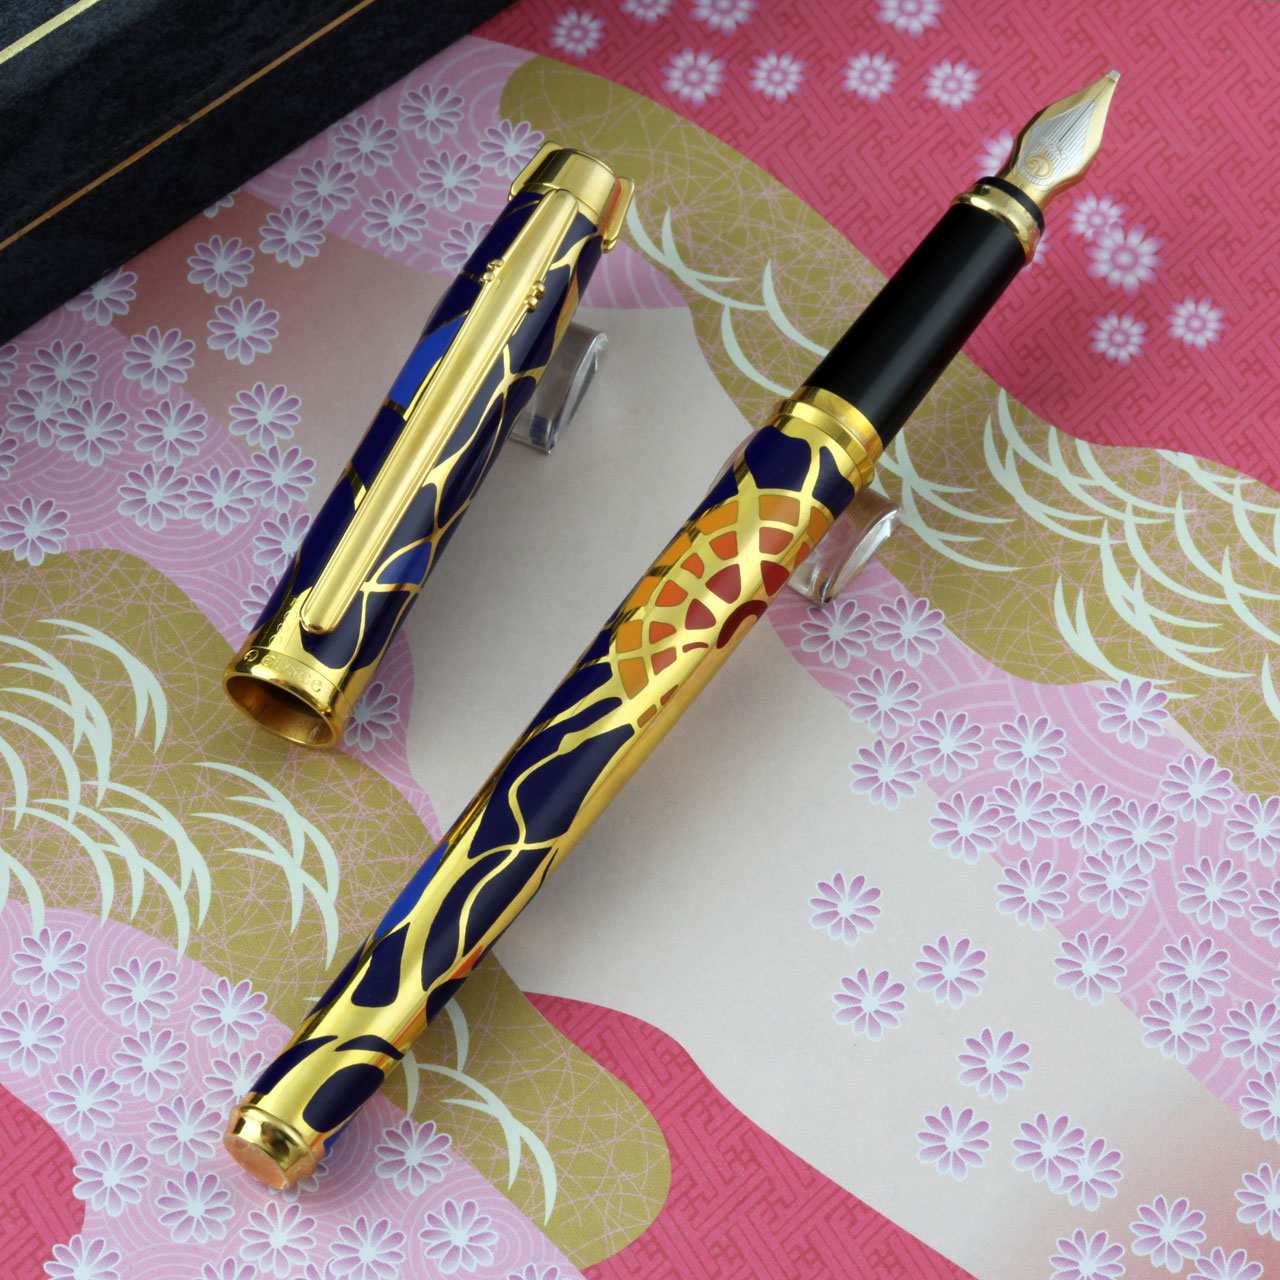 Elysee Impression Number 1 Limited Edition 1994 Pen Each Includes Ball Point And Fountain As The Diagram Lyse